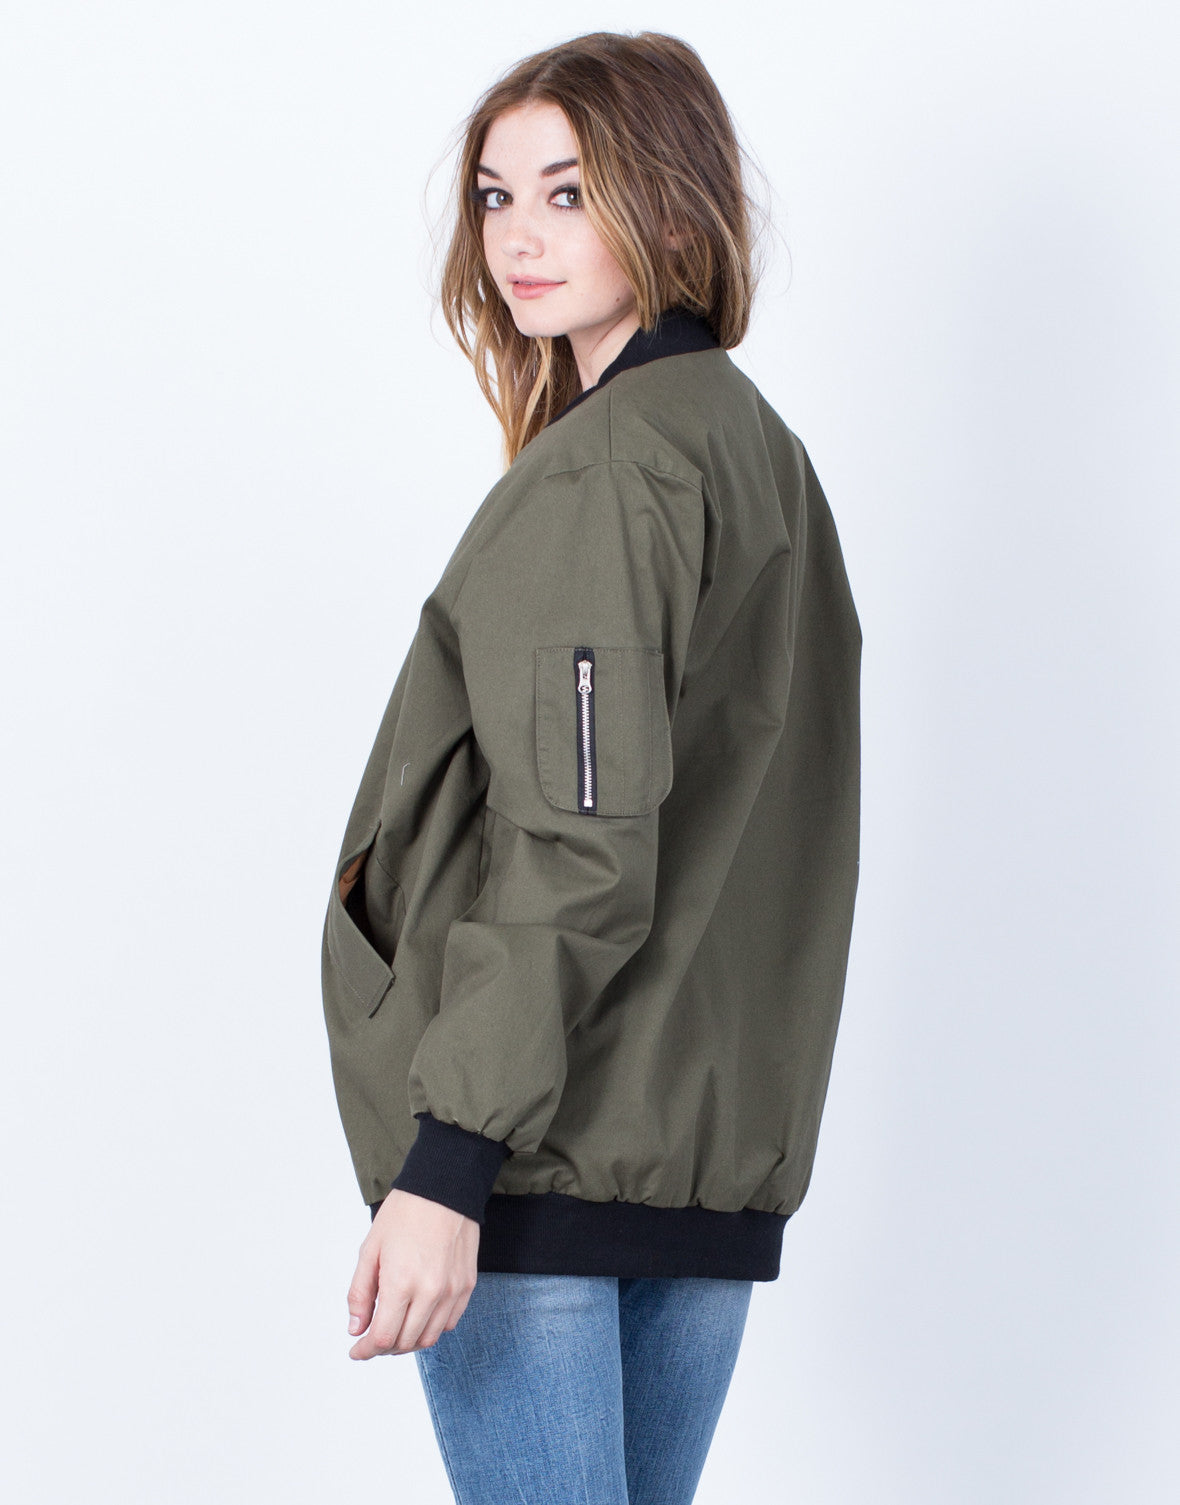 Back View of Military Bomber Jacket